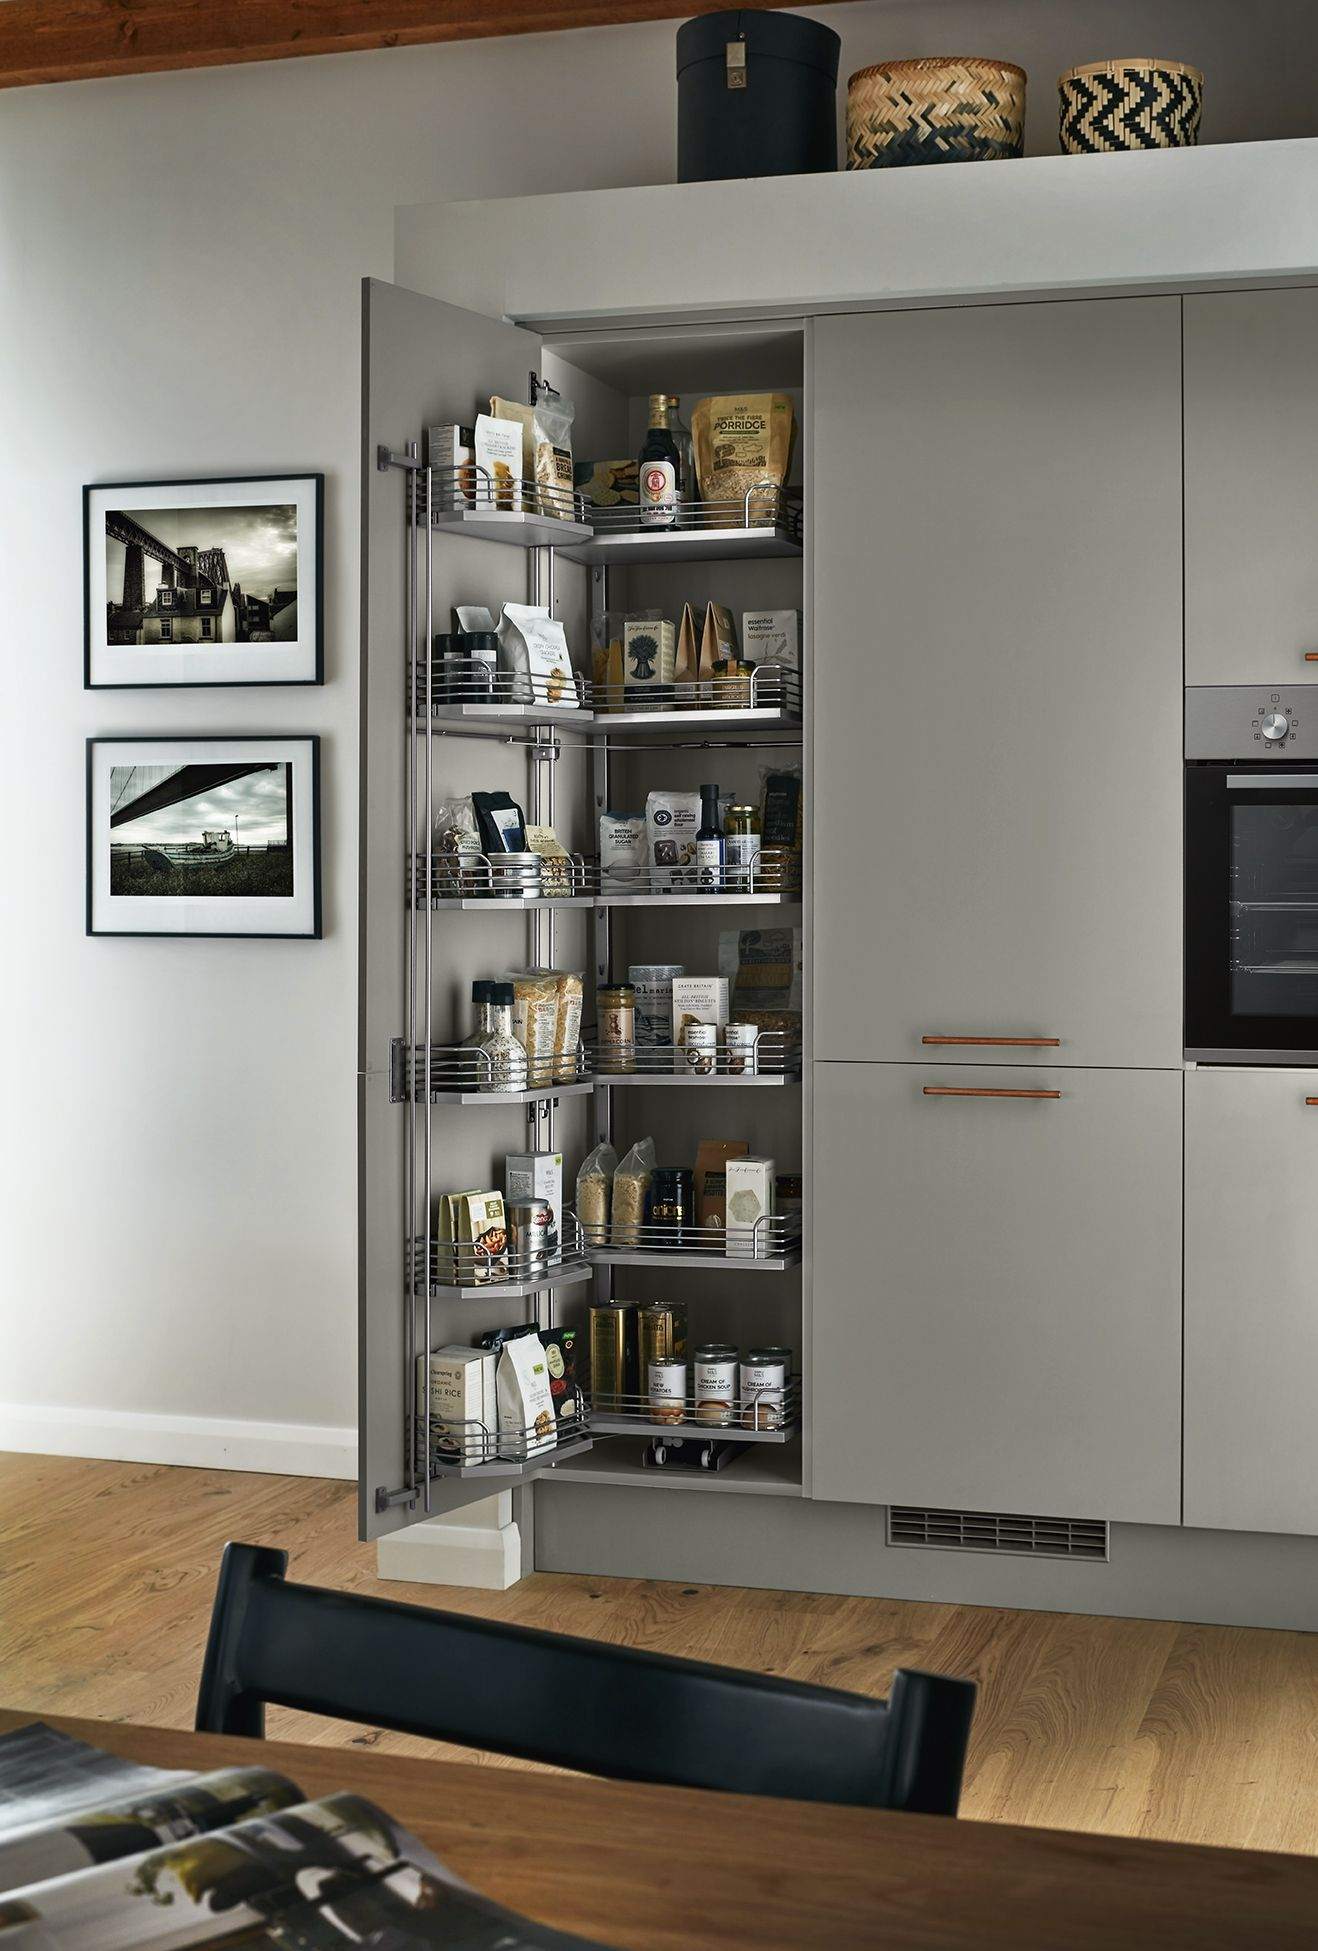 Kitchen Storage Idea | Modern kitchen design, Modern ...